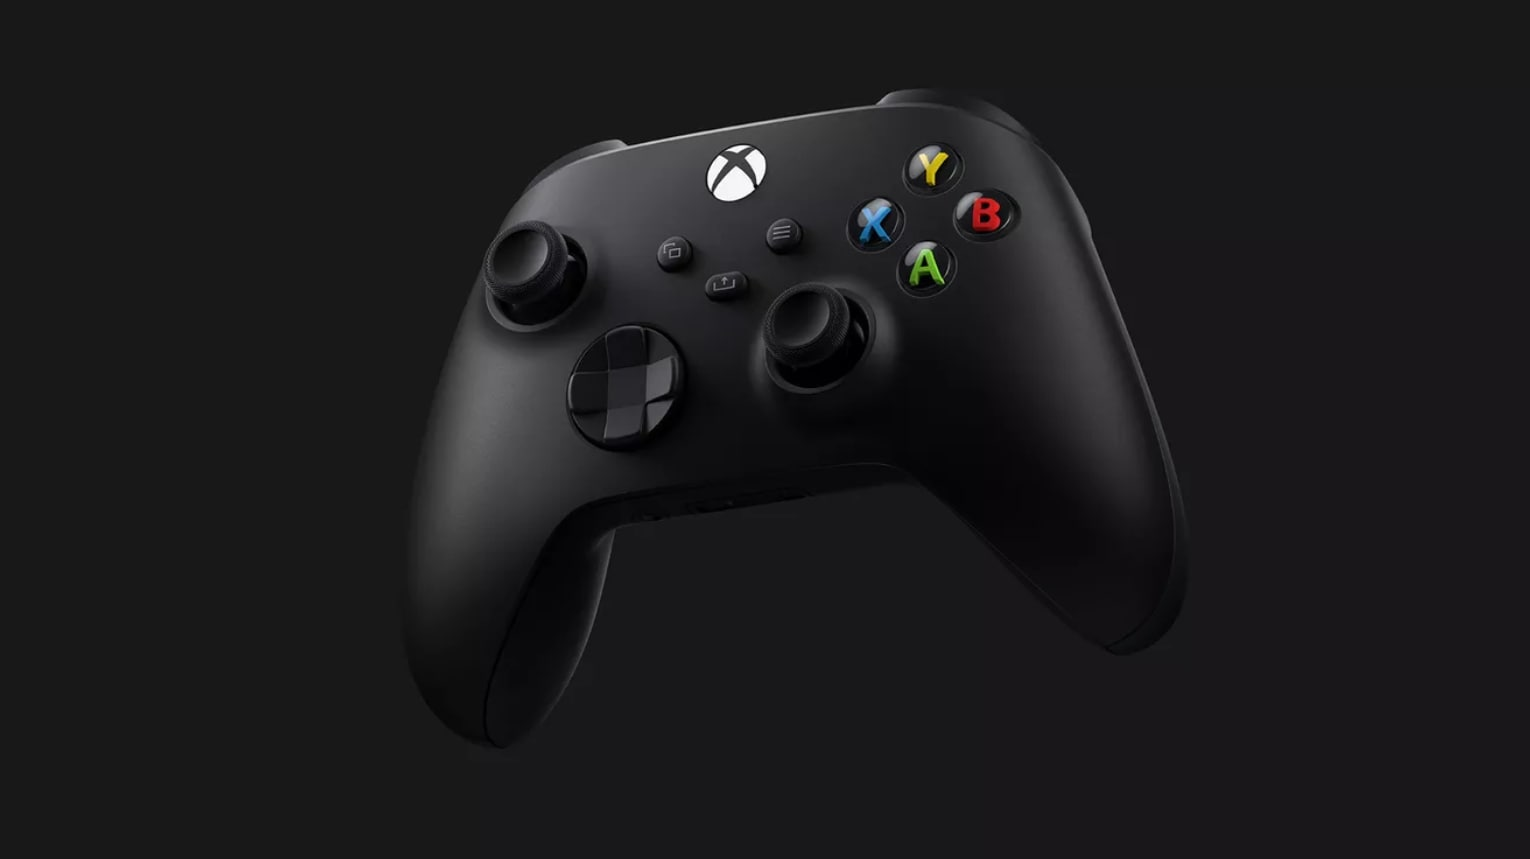 The black version of the controller spotted on Reddit.